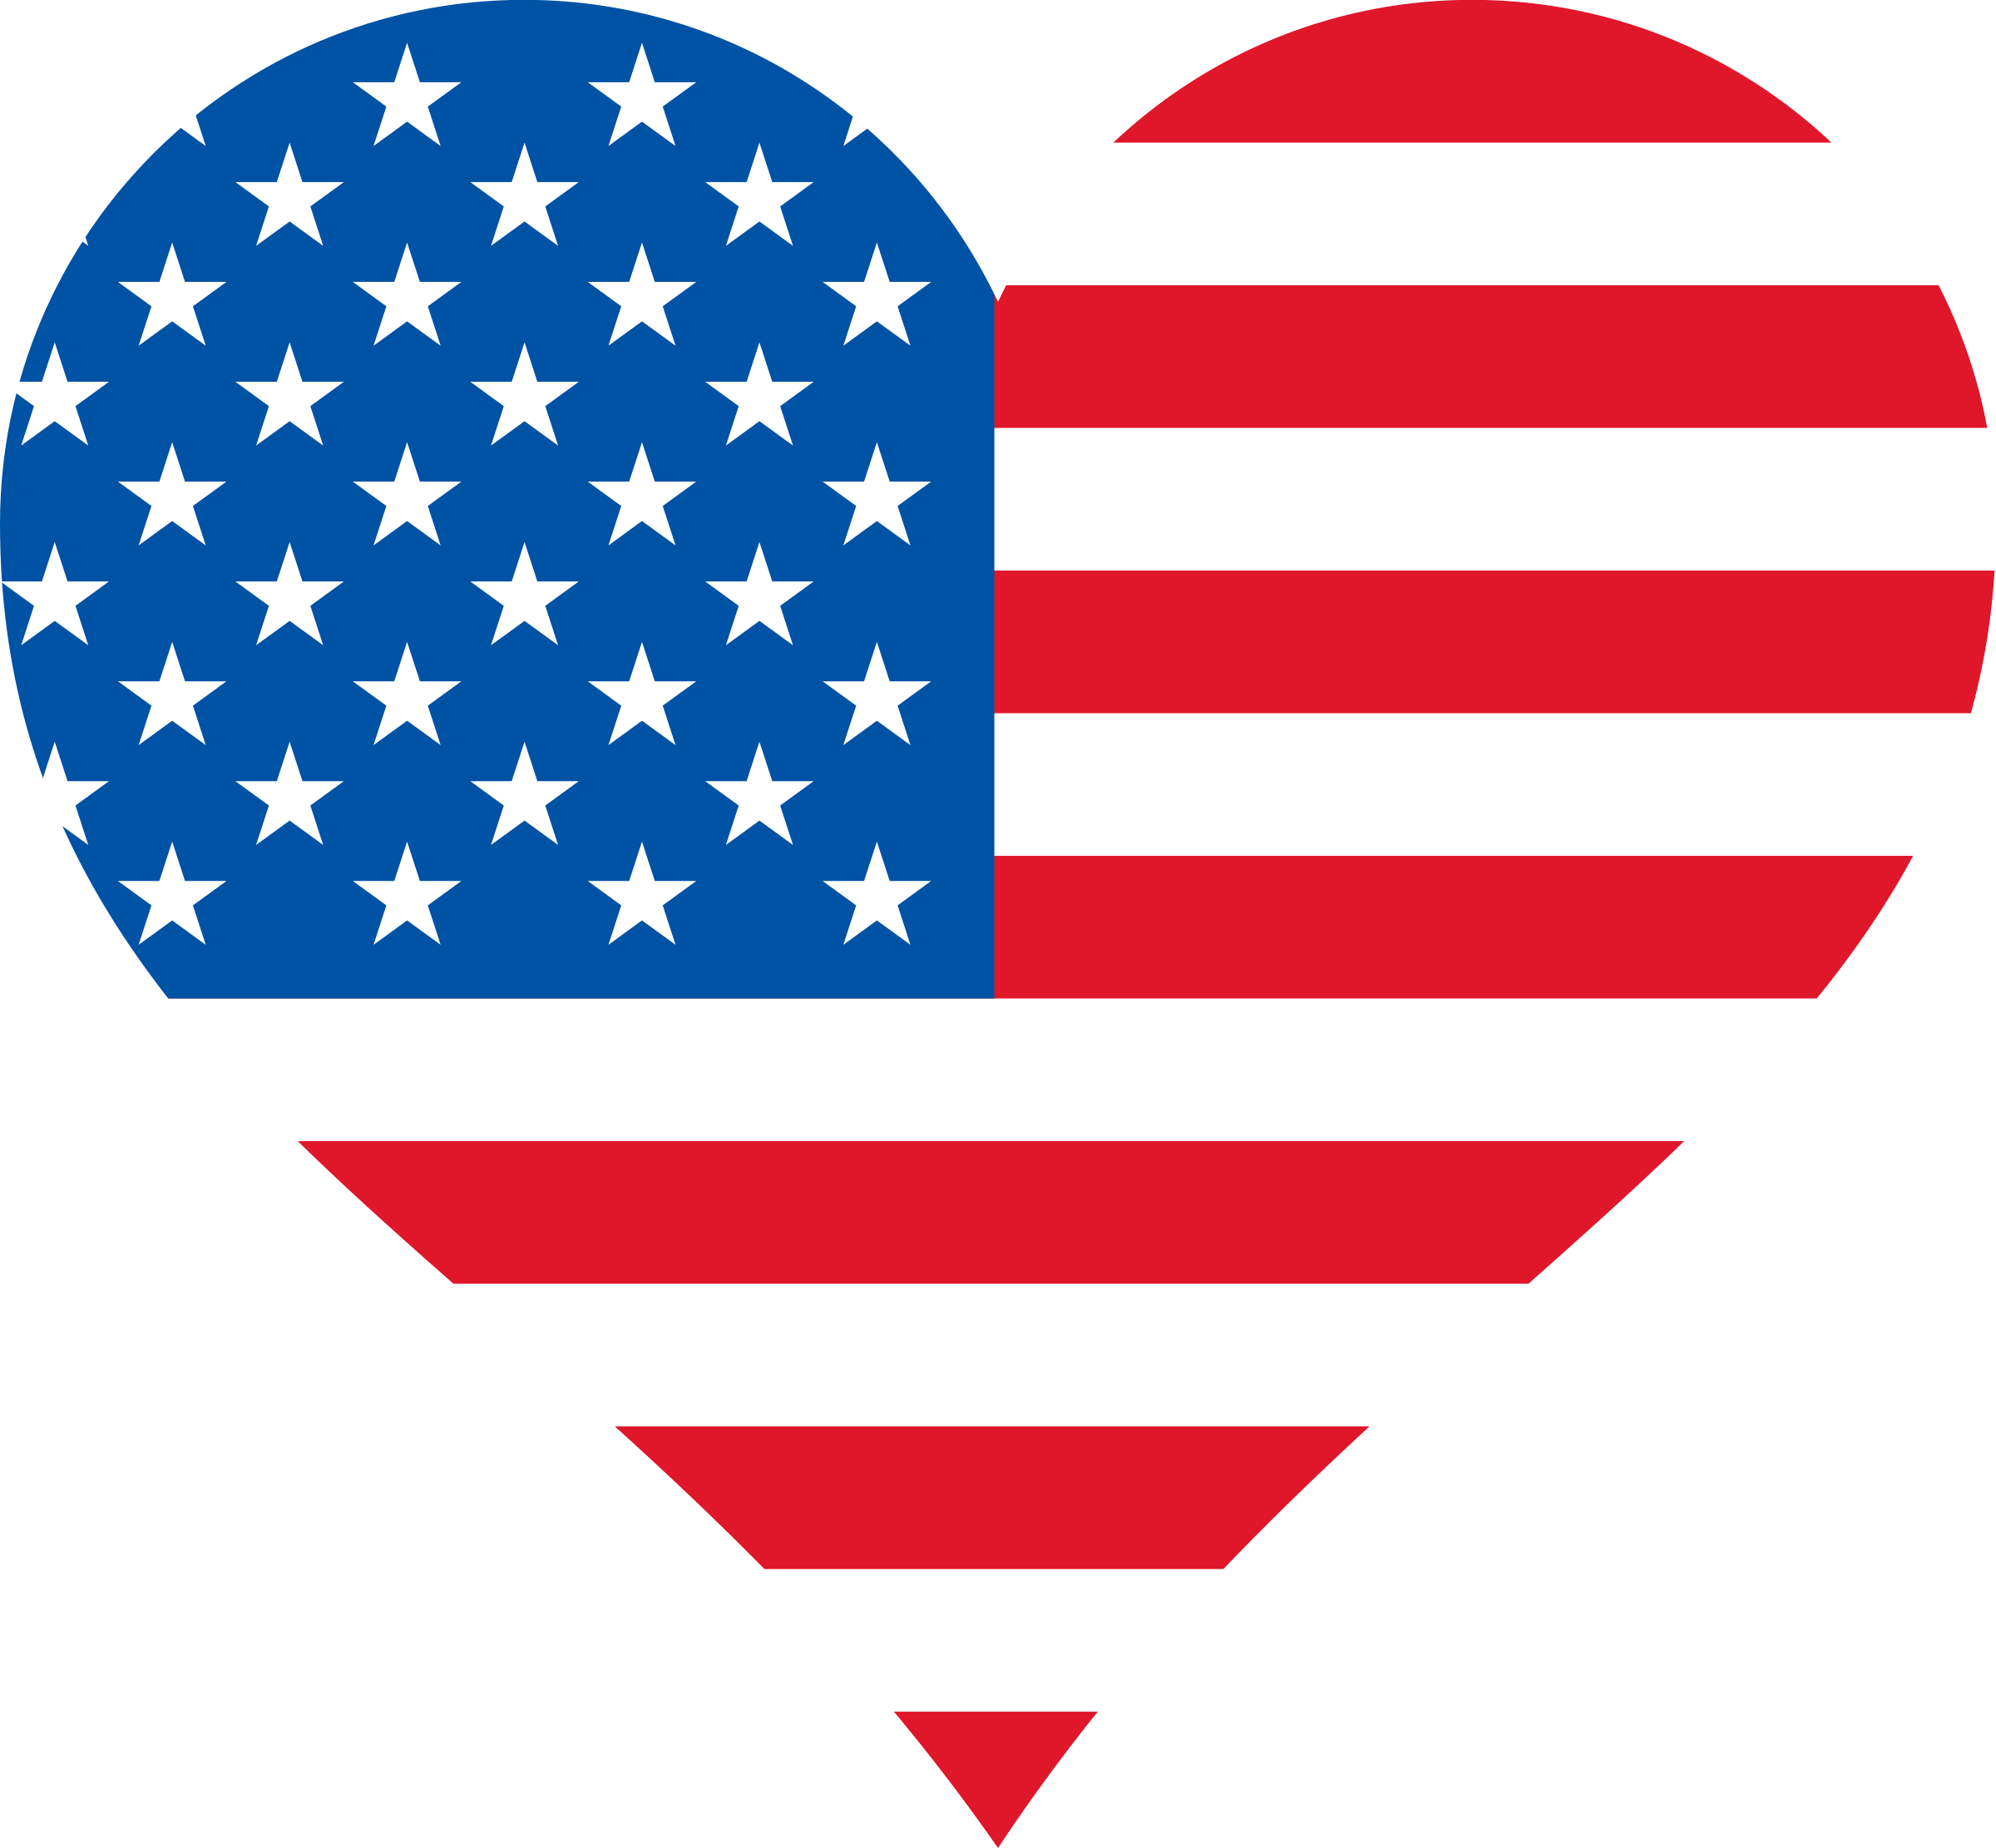 Stars and stripes heart. Clipart of us flag